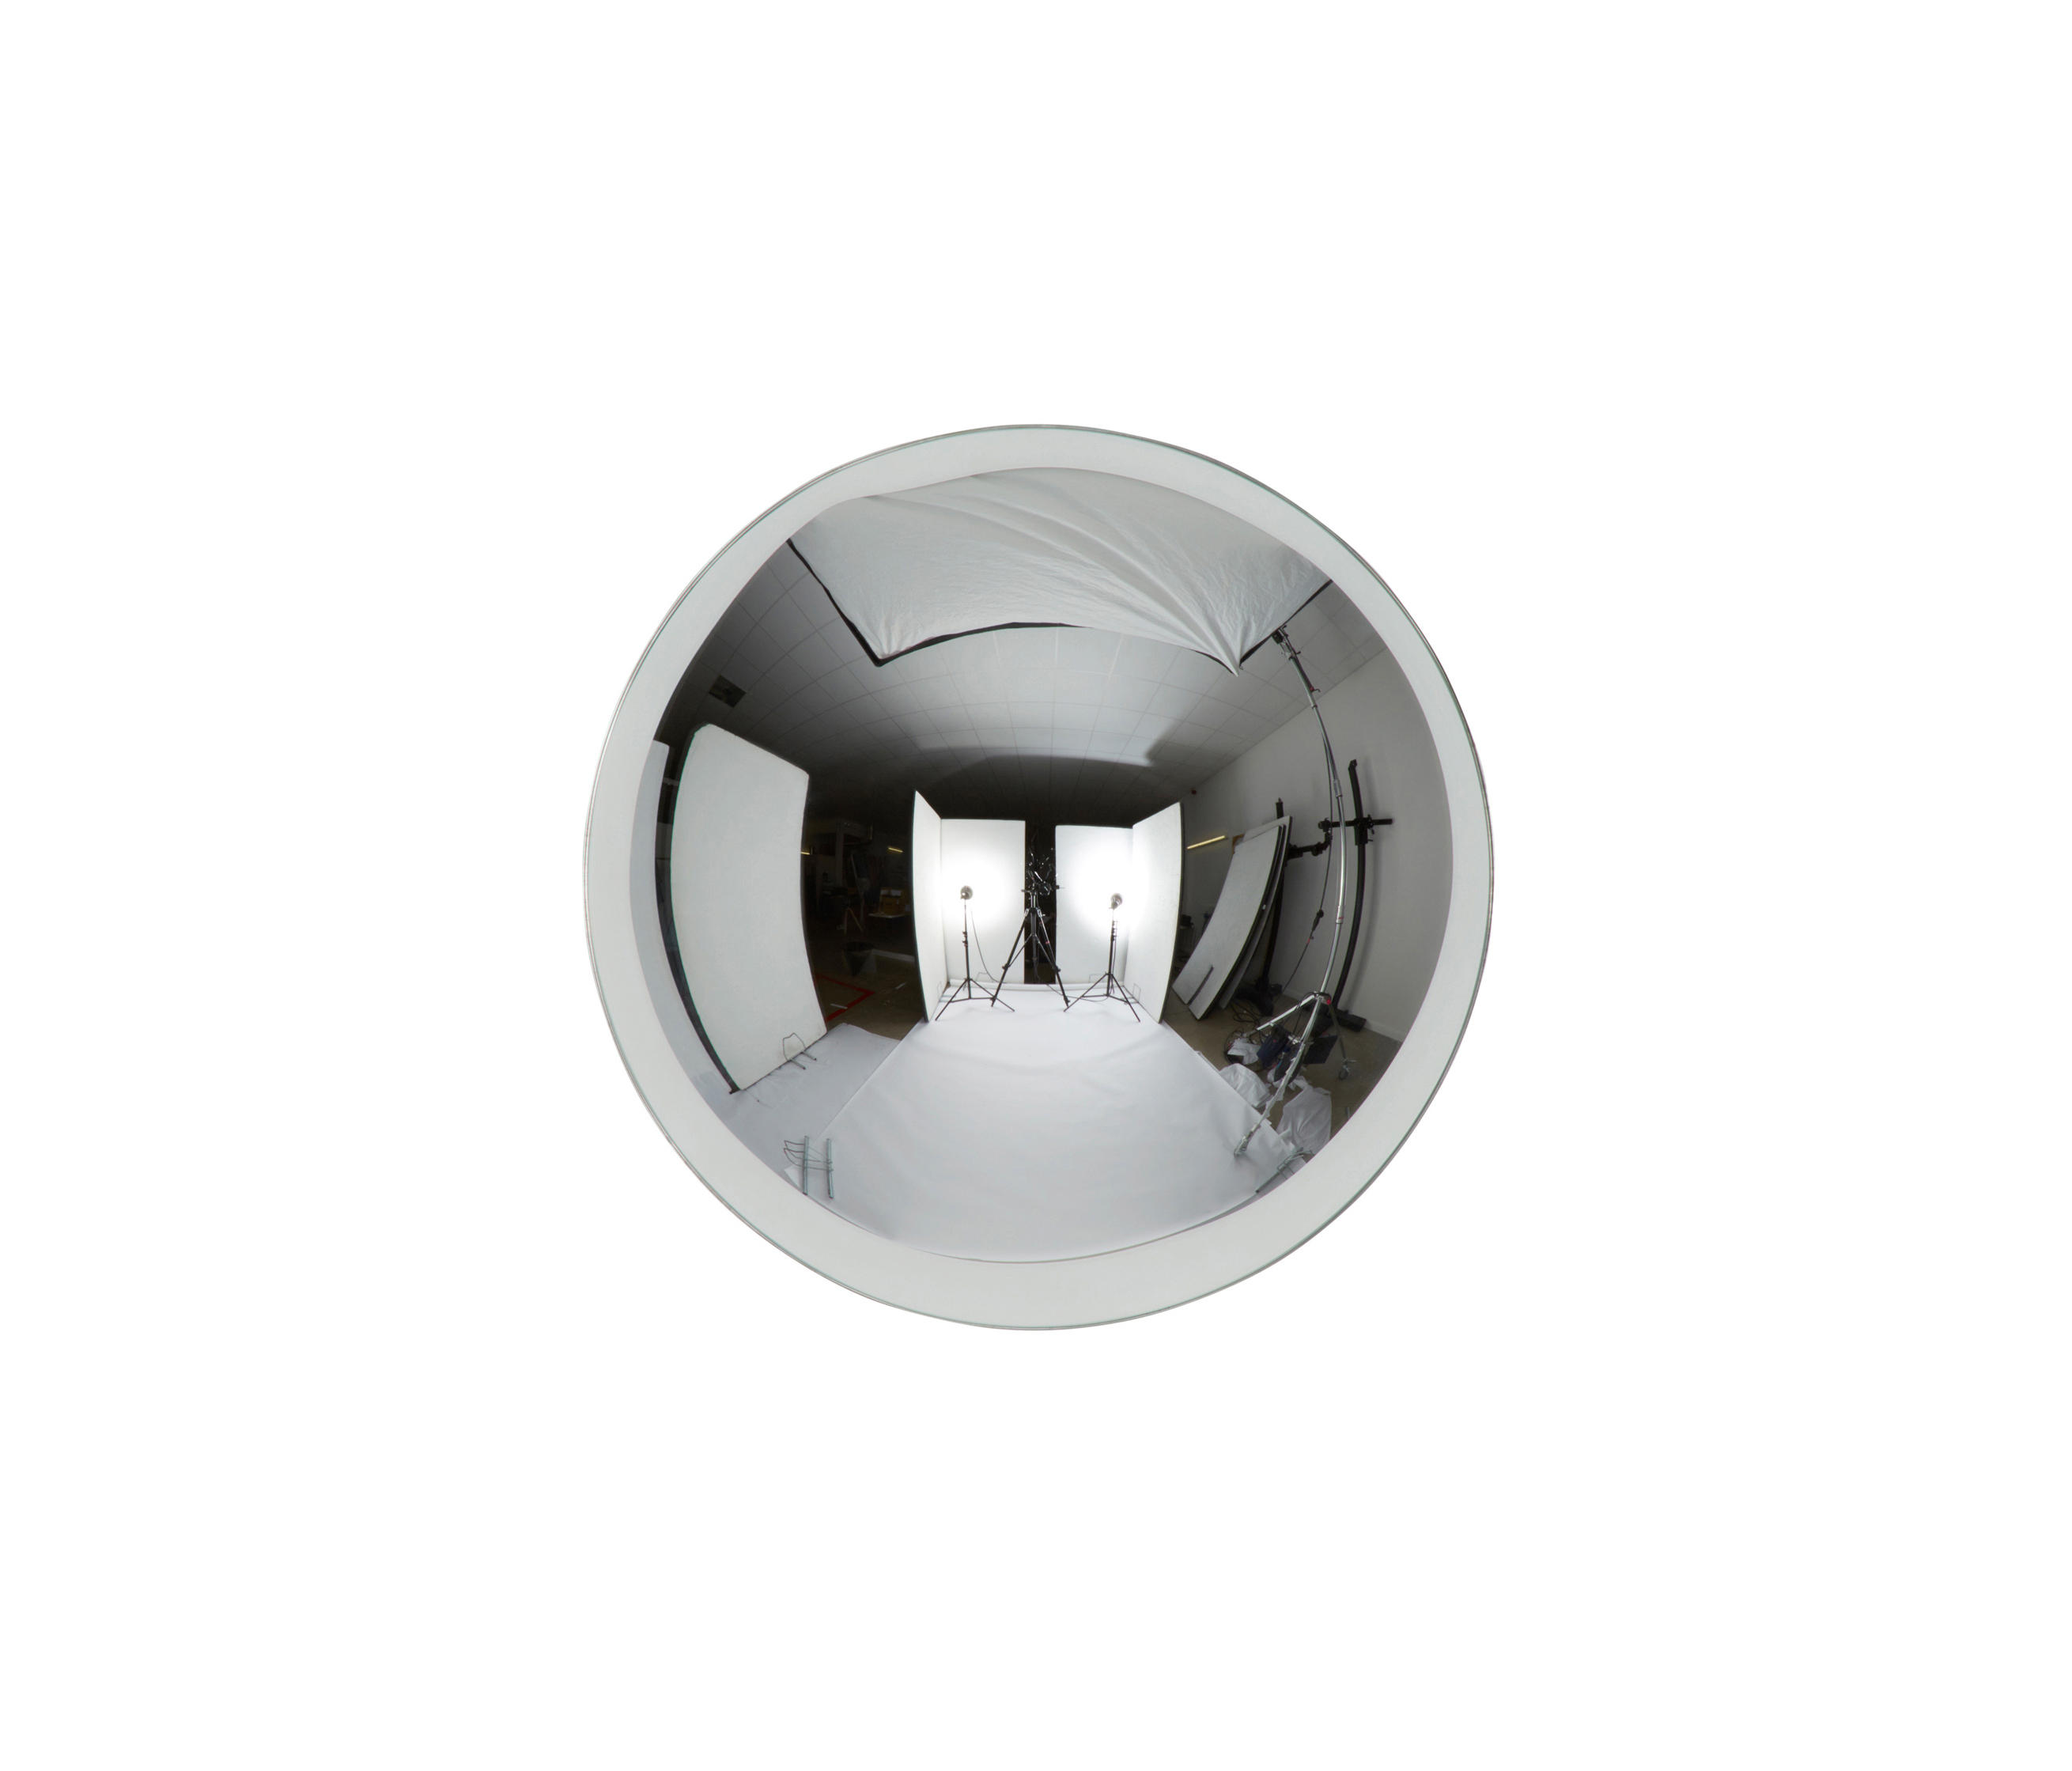 dome mirror mirrors by tom dixon architonic. Black Bedroom Furniture Sets. Home Design Ideas